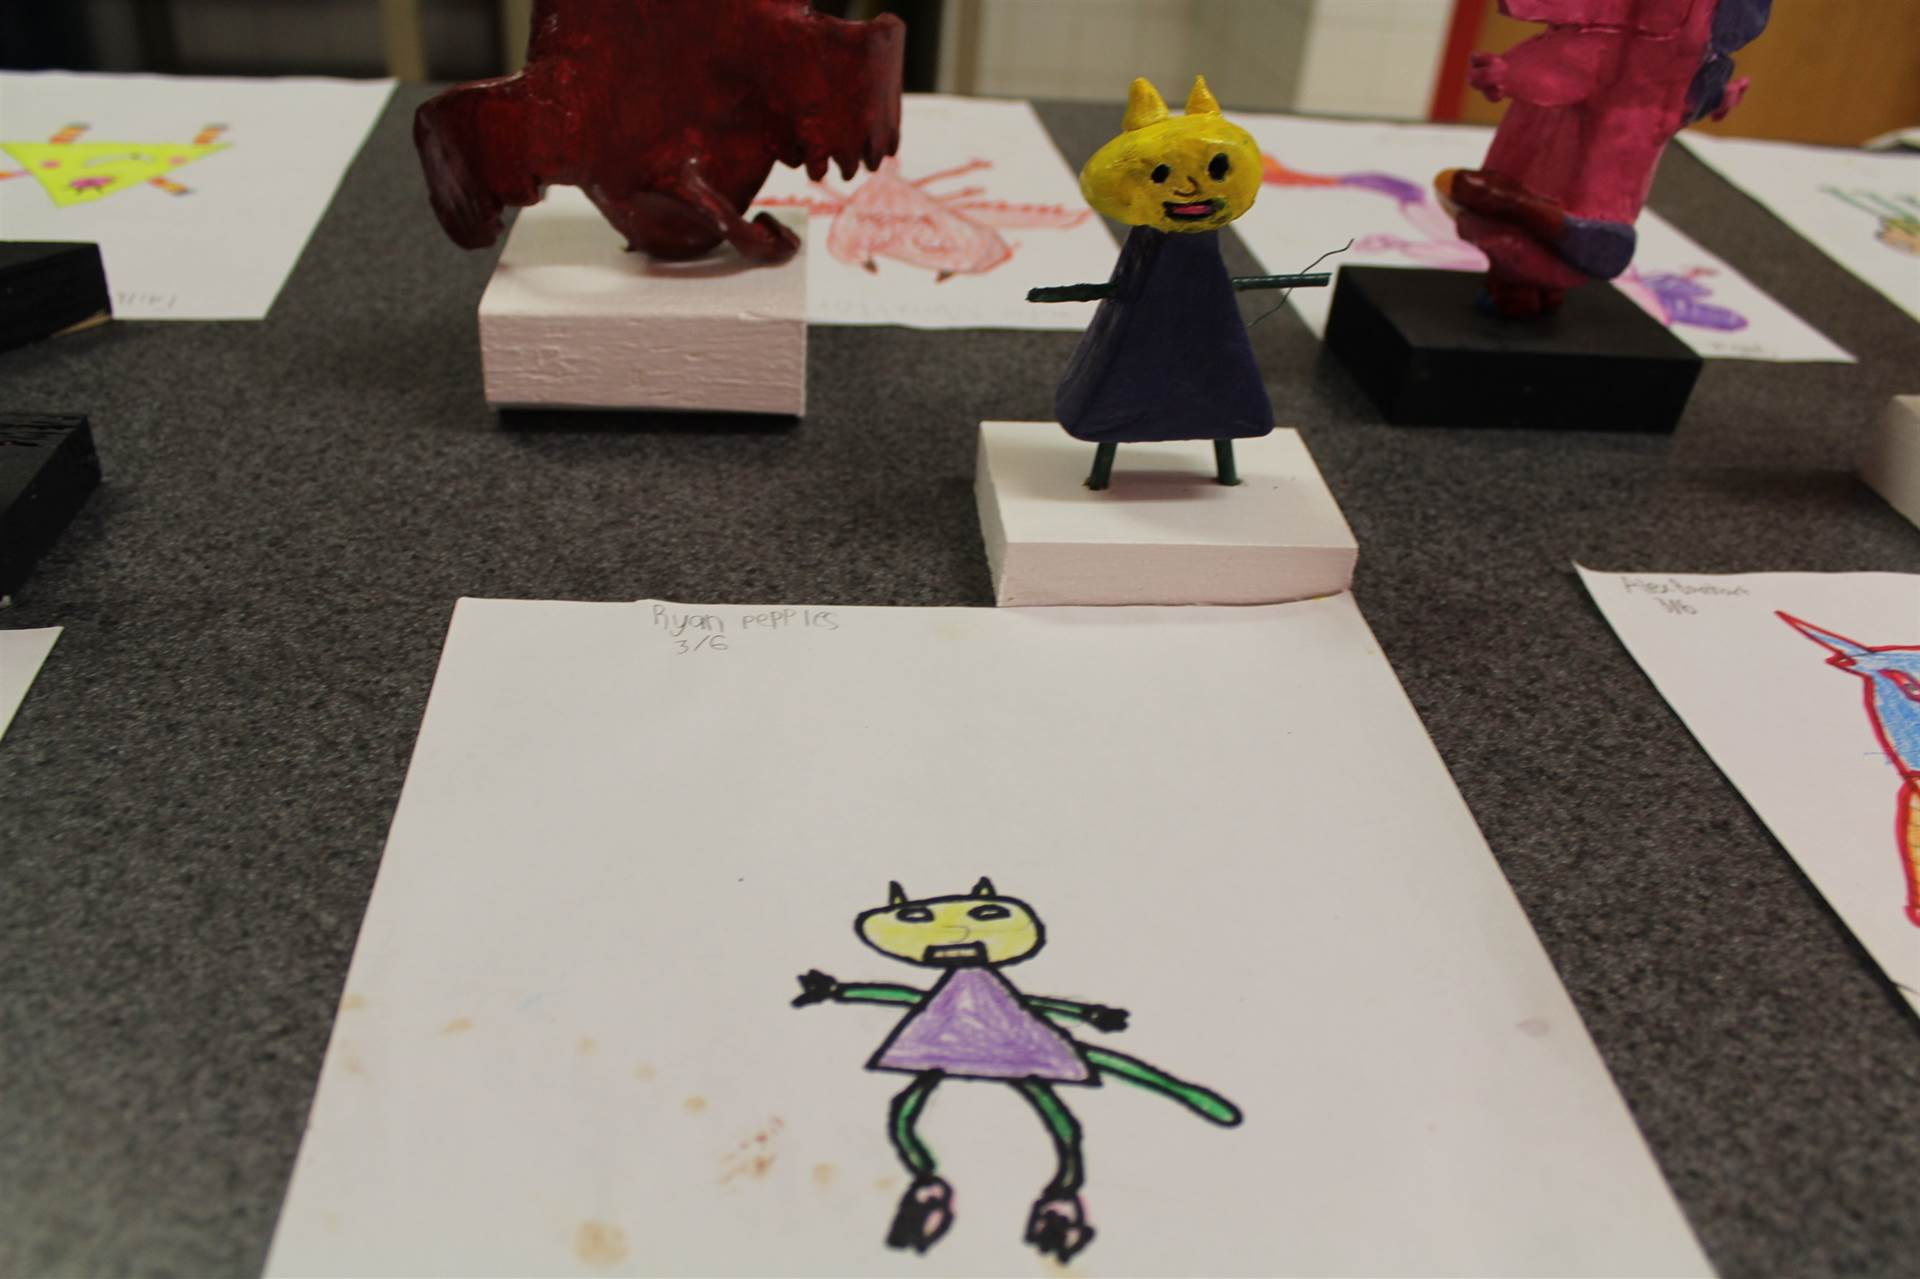 monster 3 d sculpture next to drawn picture 105